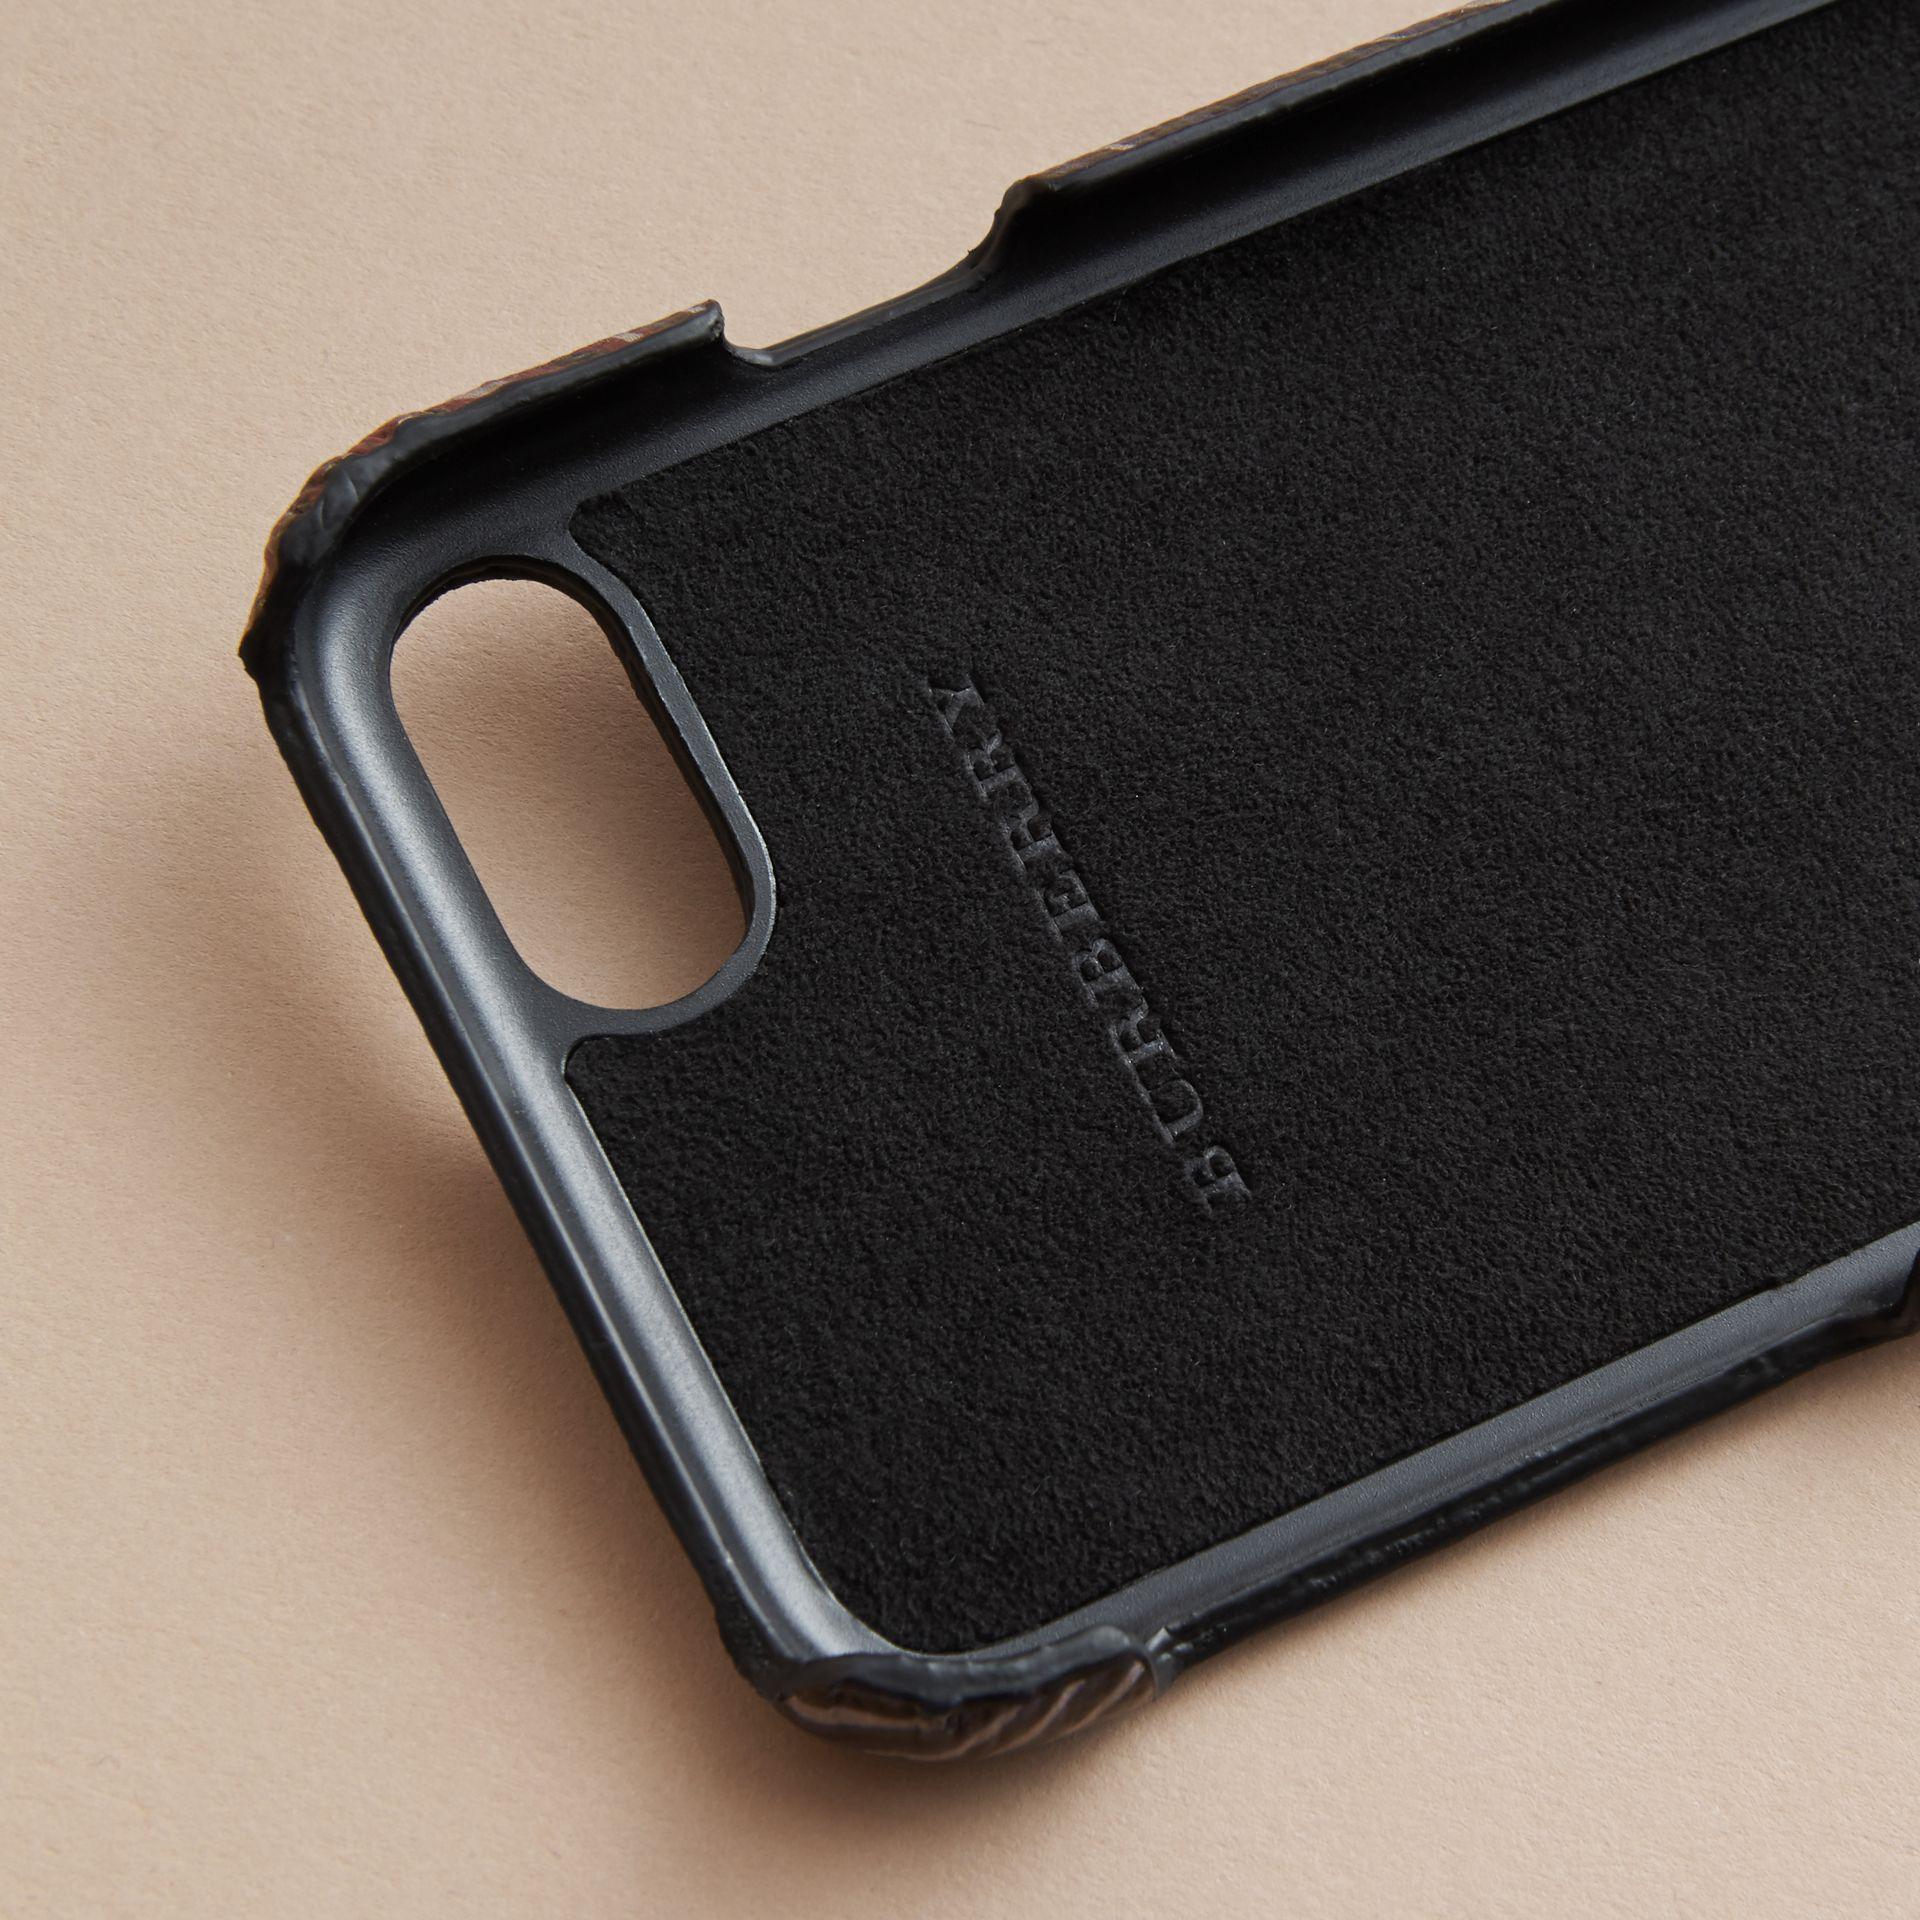 Beasts Print London Leather iPhone 7 Case in Navy Grey - Men | Burberry United Kingdom - gallery image 2